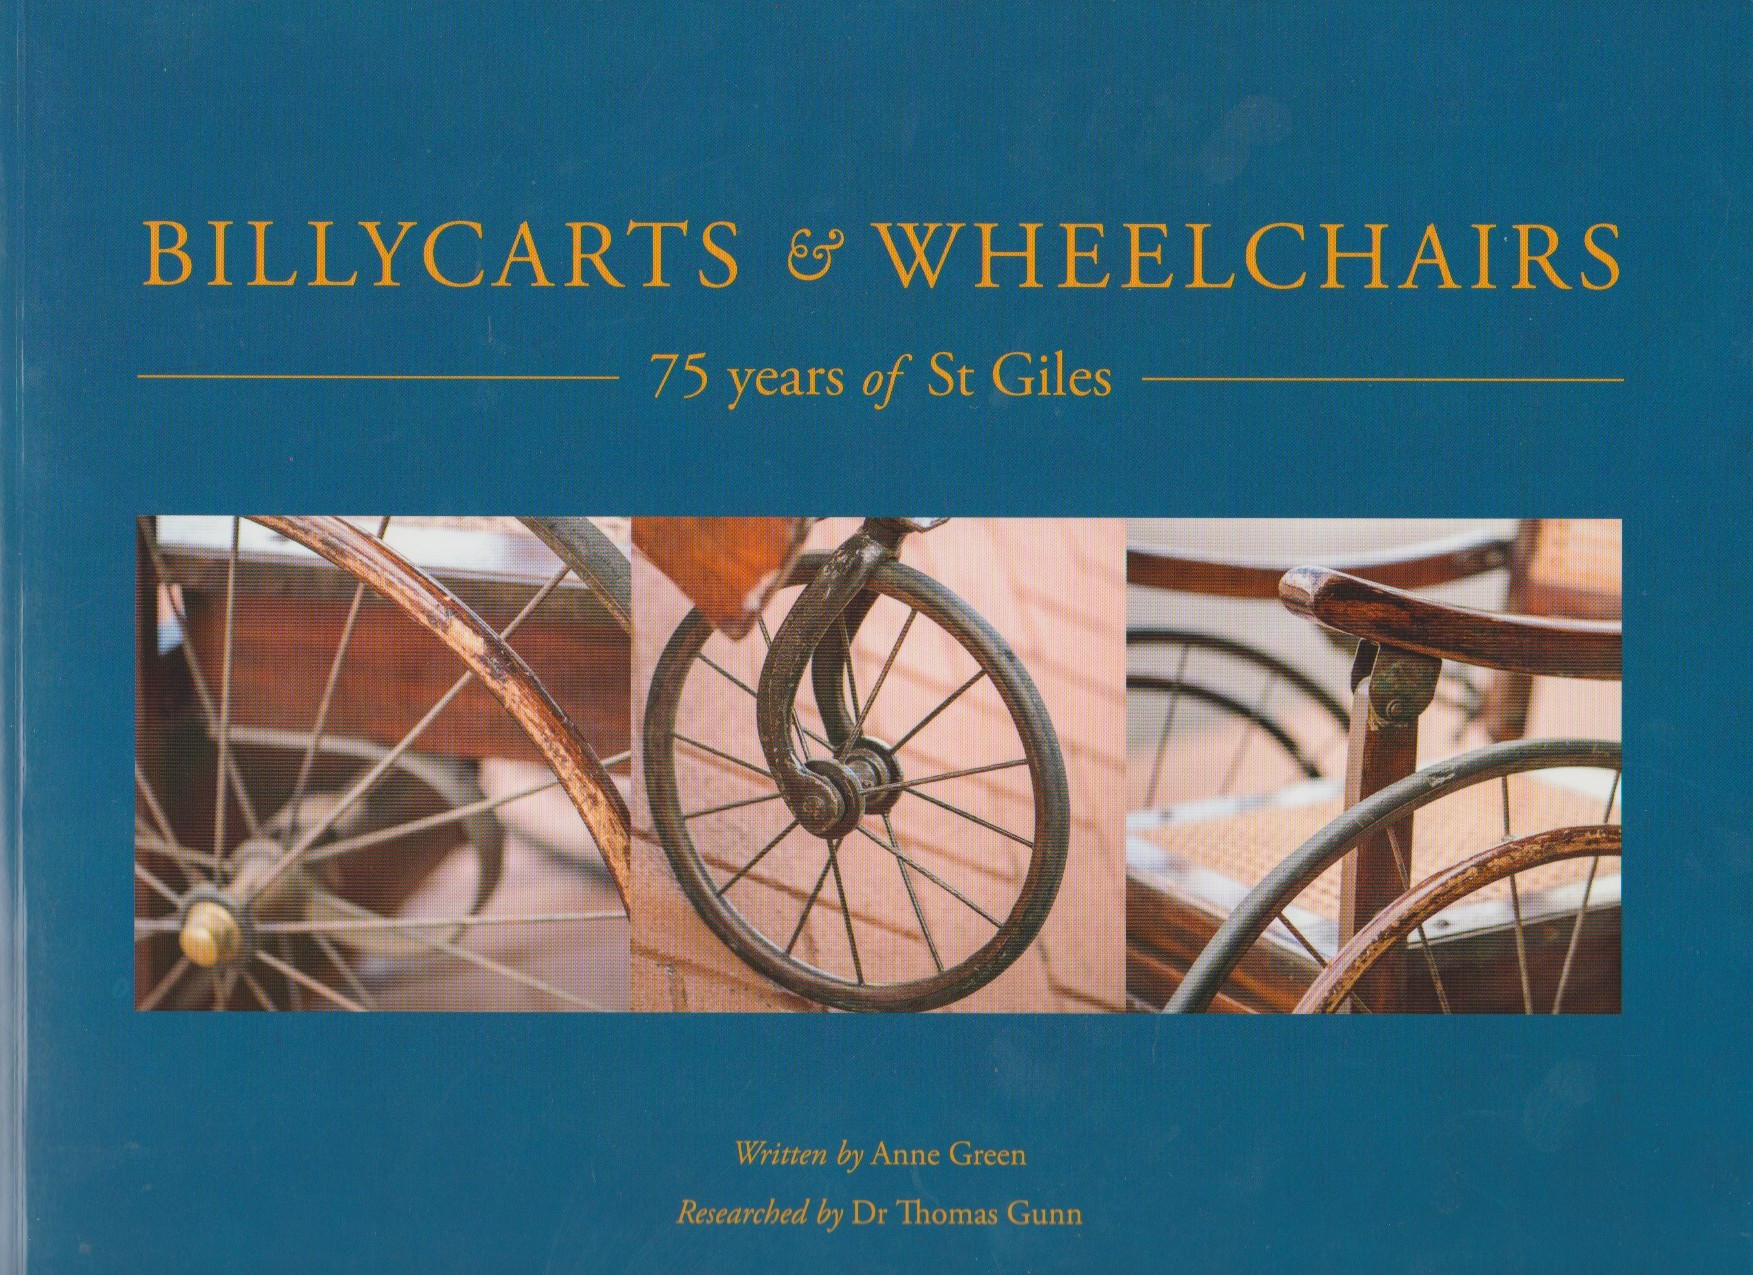 Billycarts & Wheelchairs - 75 Years of St Giles